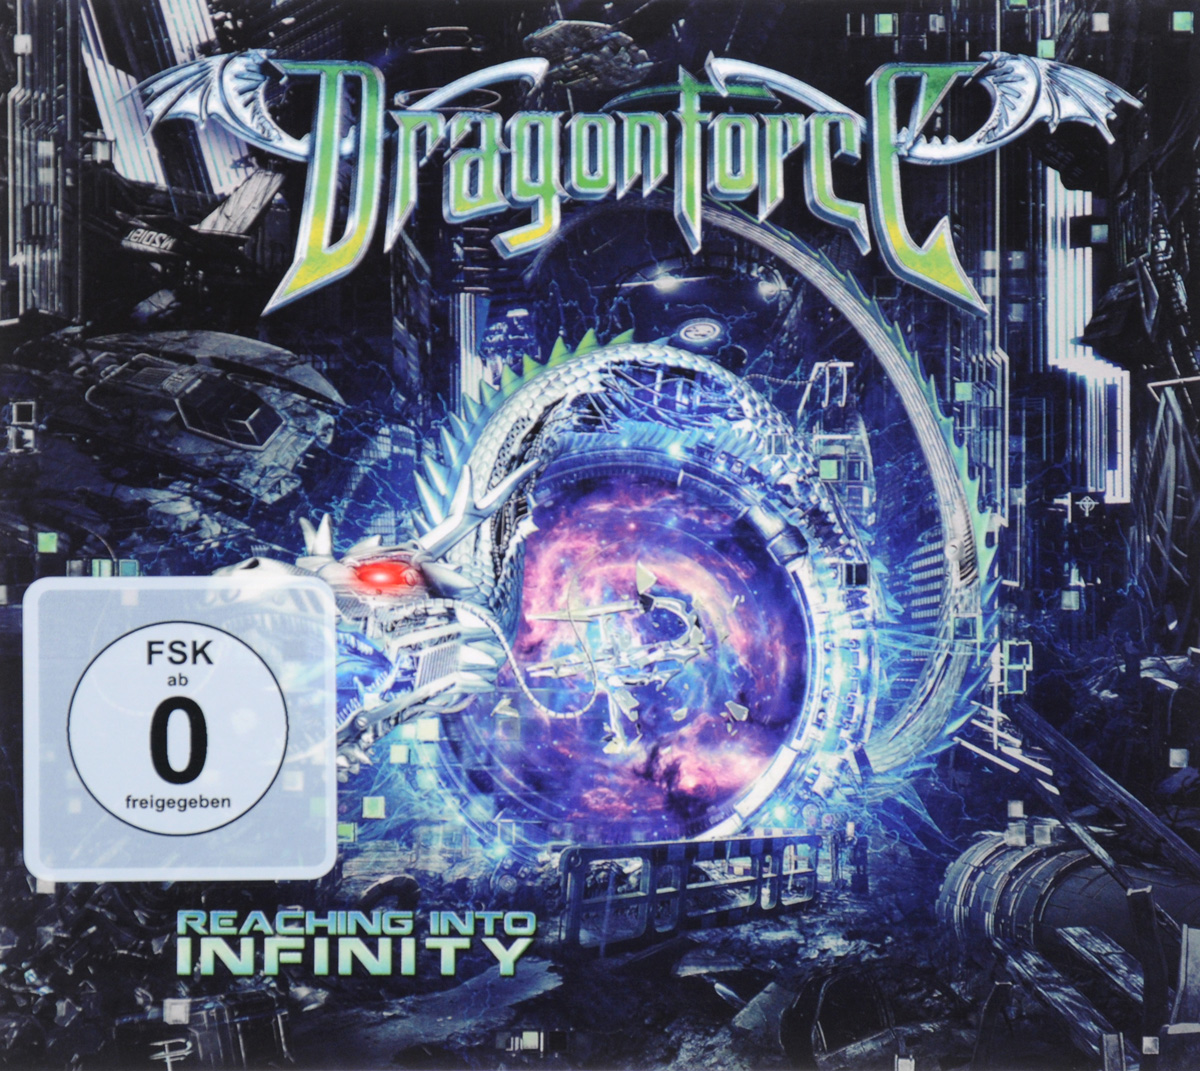 Dragonforce: Reaching Into Infinity. Limited Edition (DVD + CD) аппарат для ухода за кожей bradex ажур